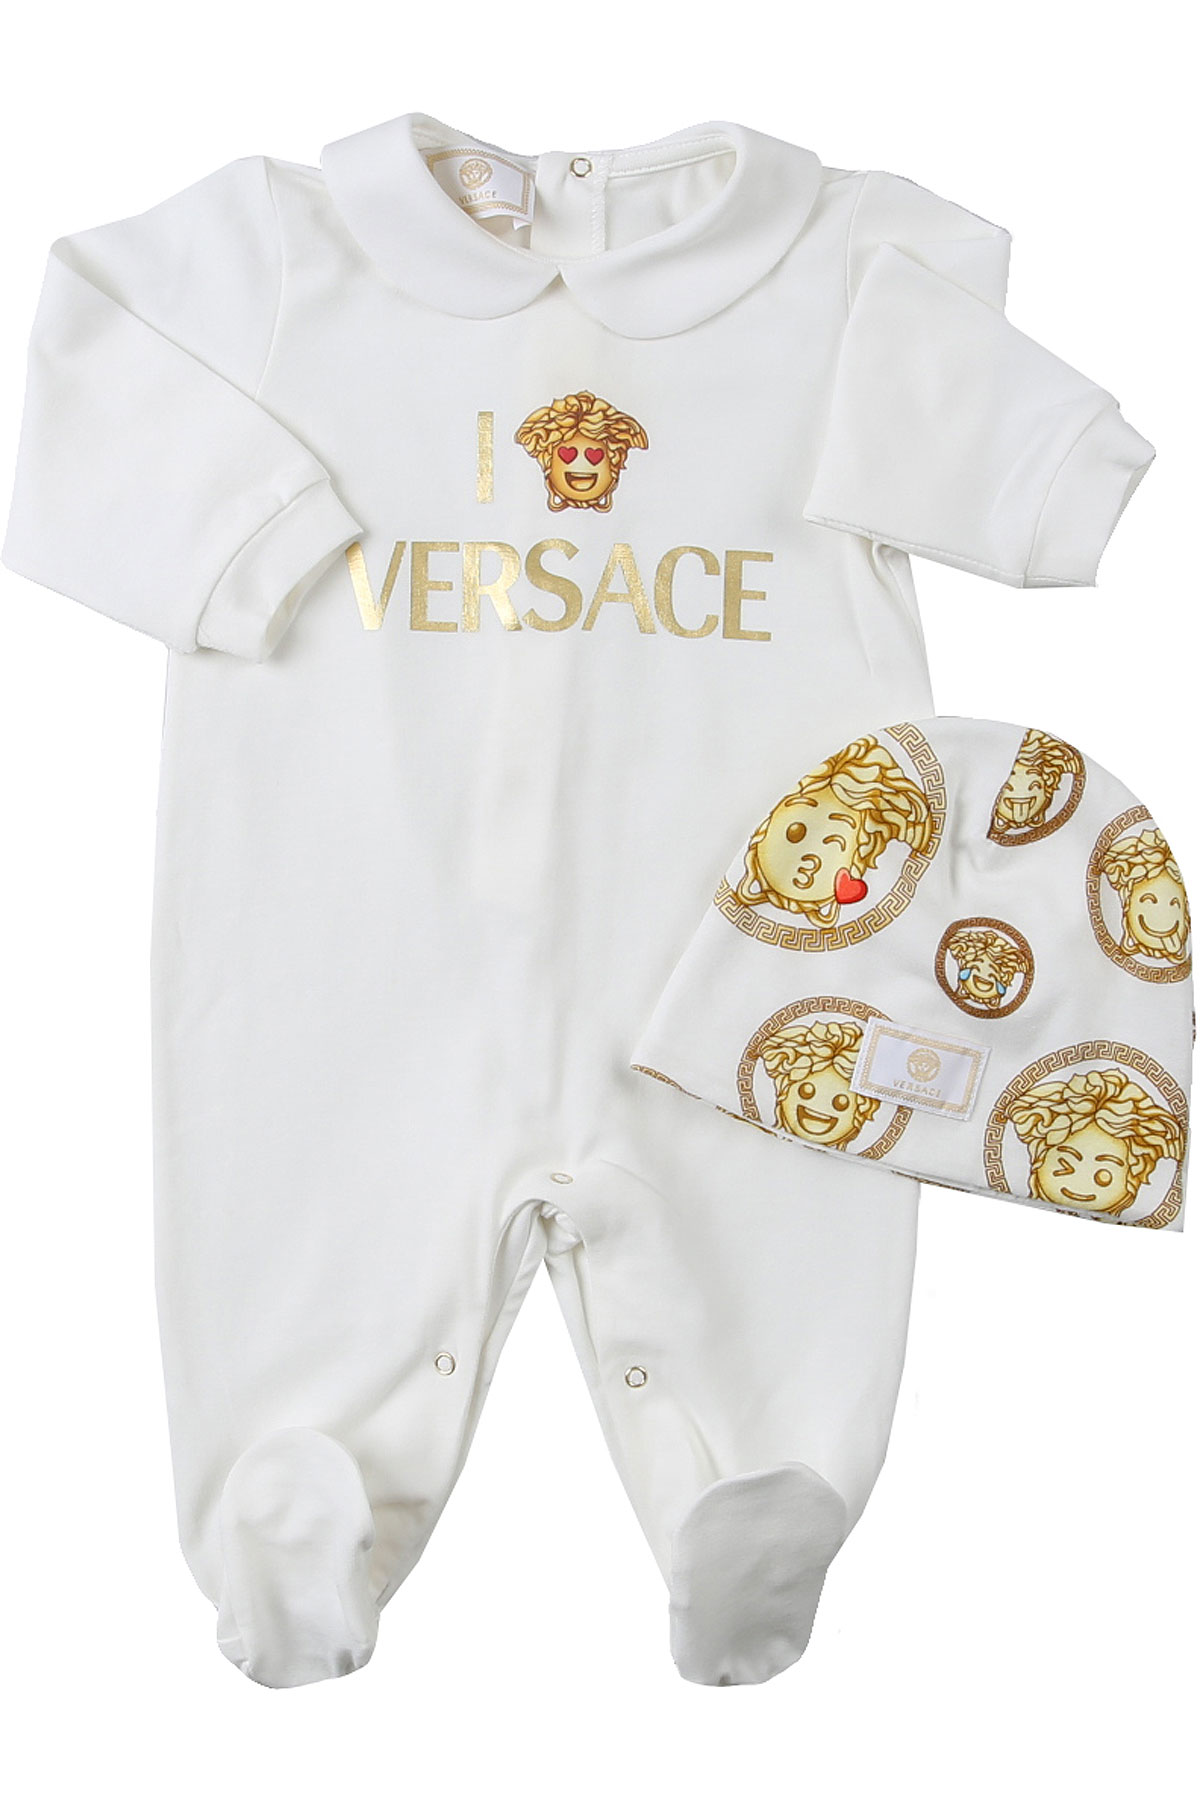 Versace Baby Sets for Girls On Sale, White, Cotton, 2019, 12M 6M